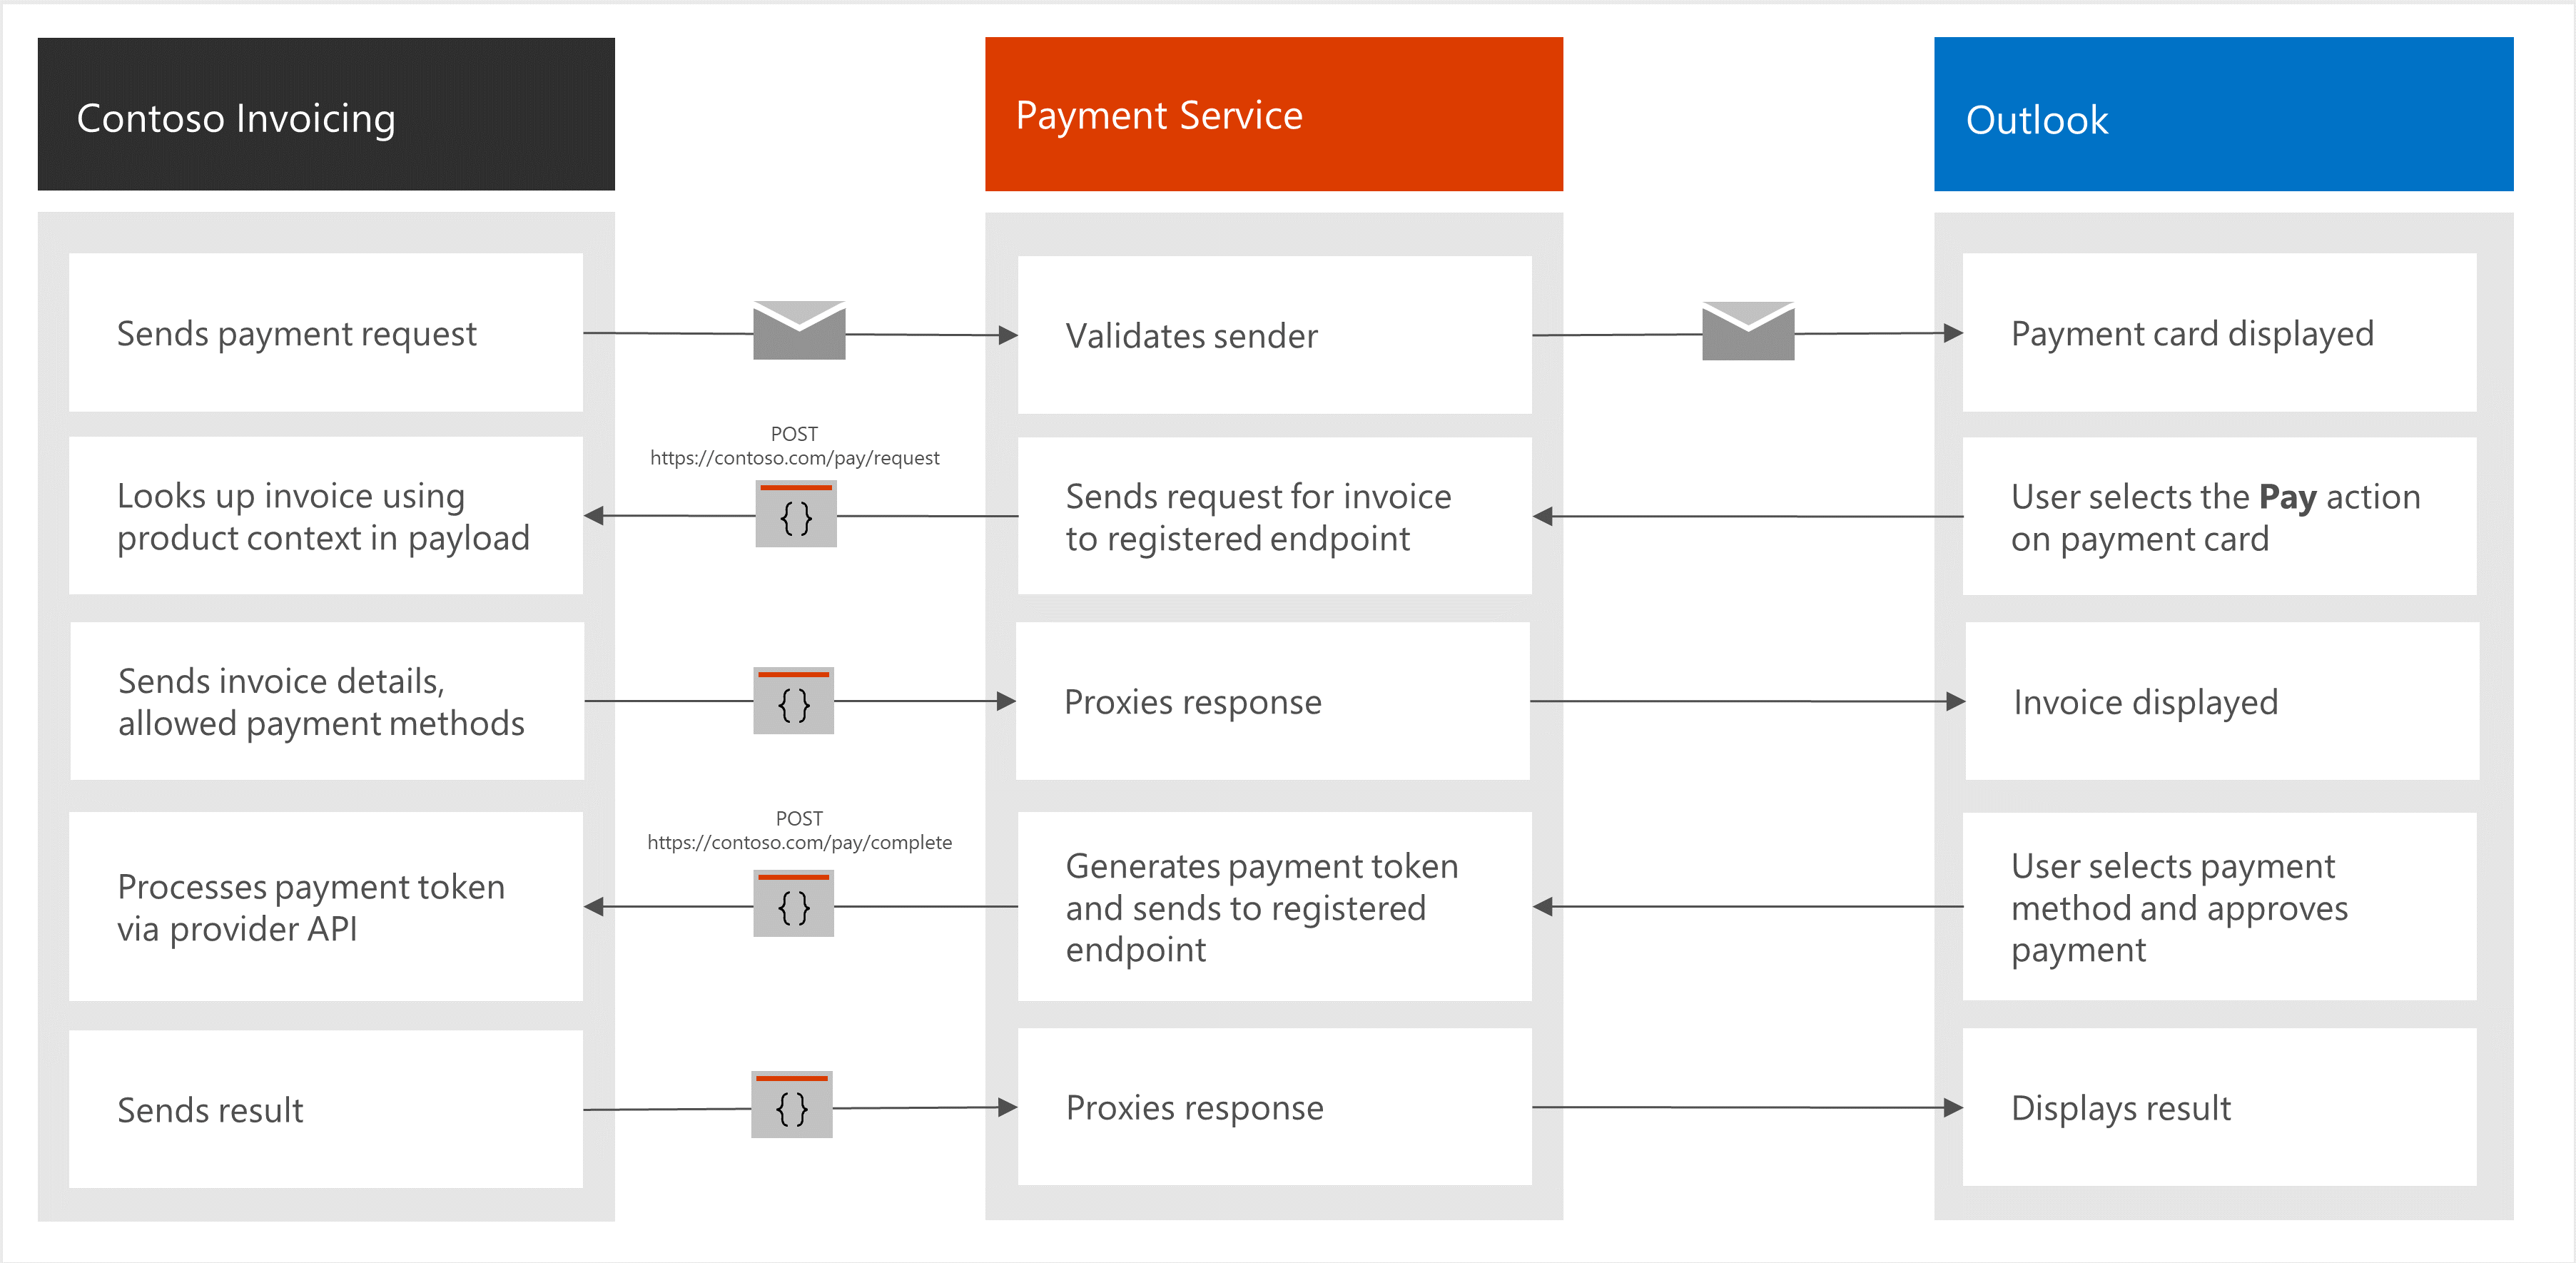 Payments In Outlook Overview Microsoft Docs - Send invoice after payment received